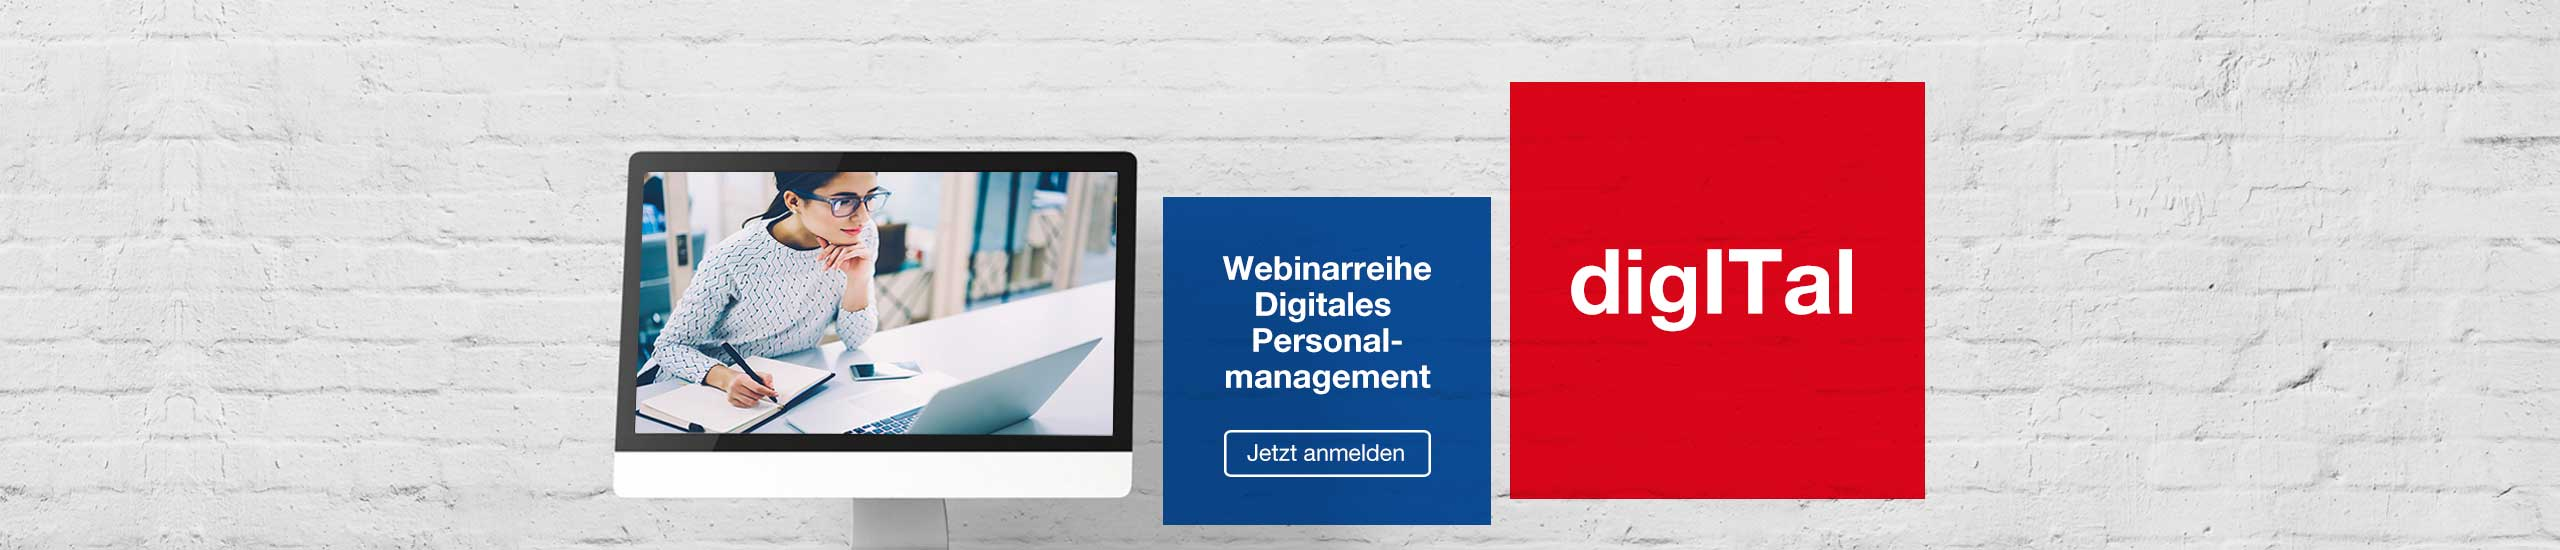 Digitales Personalmanagement